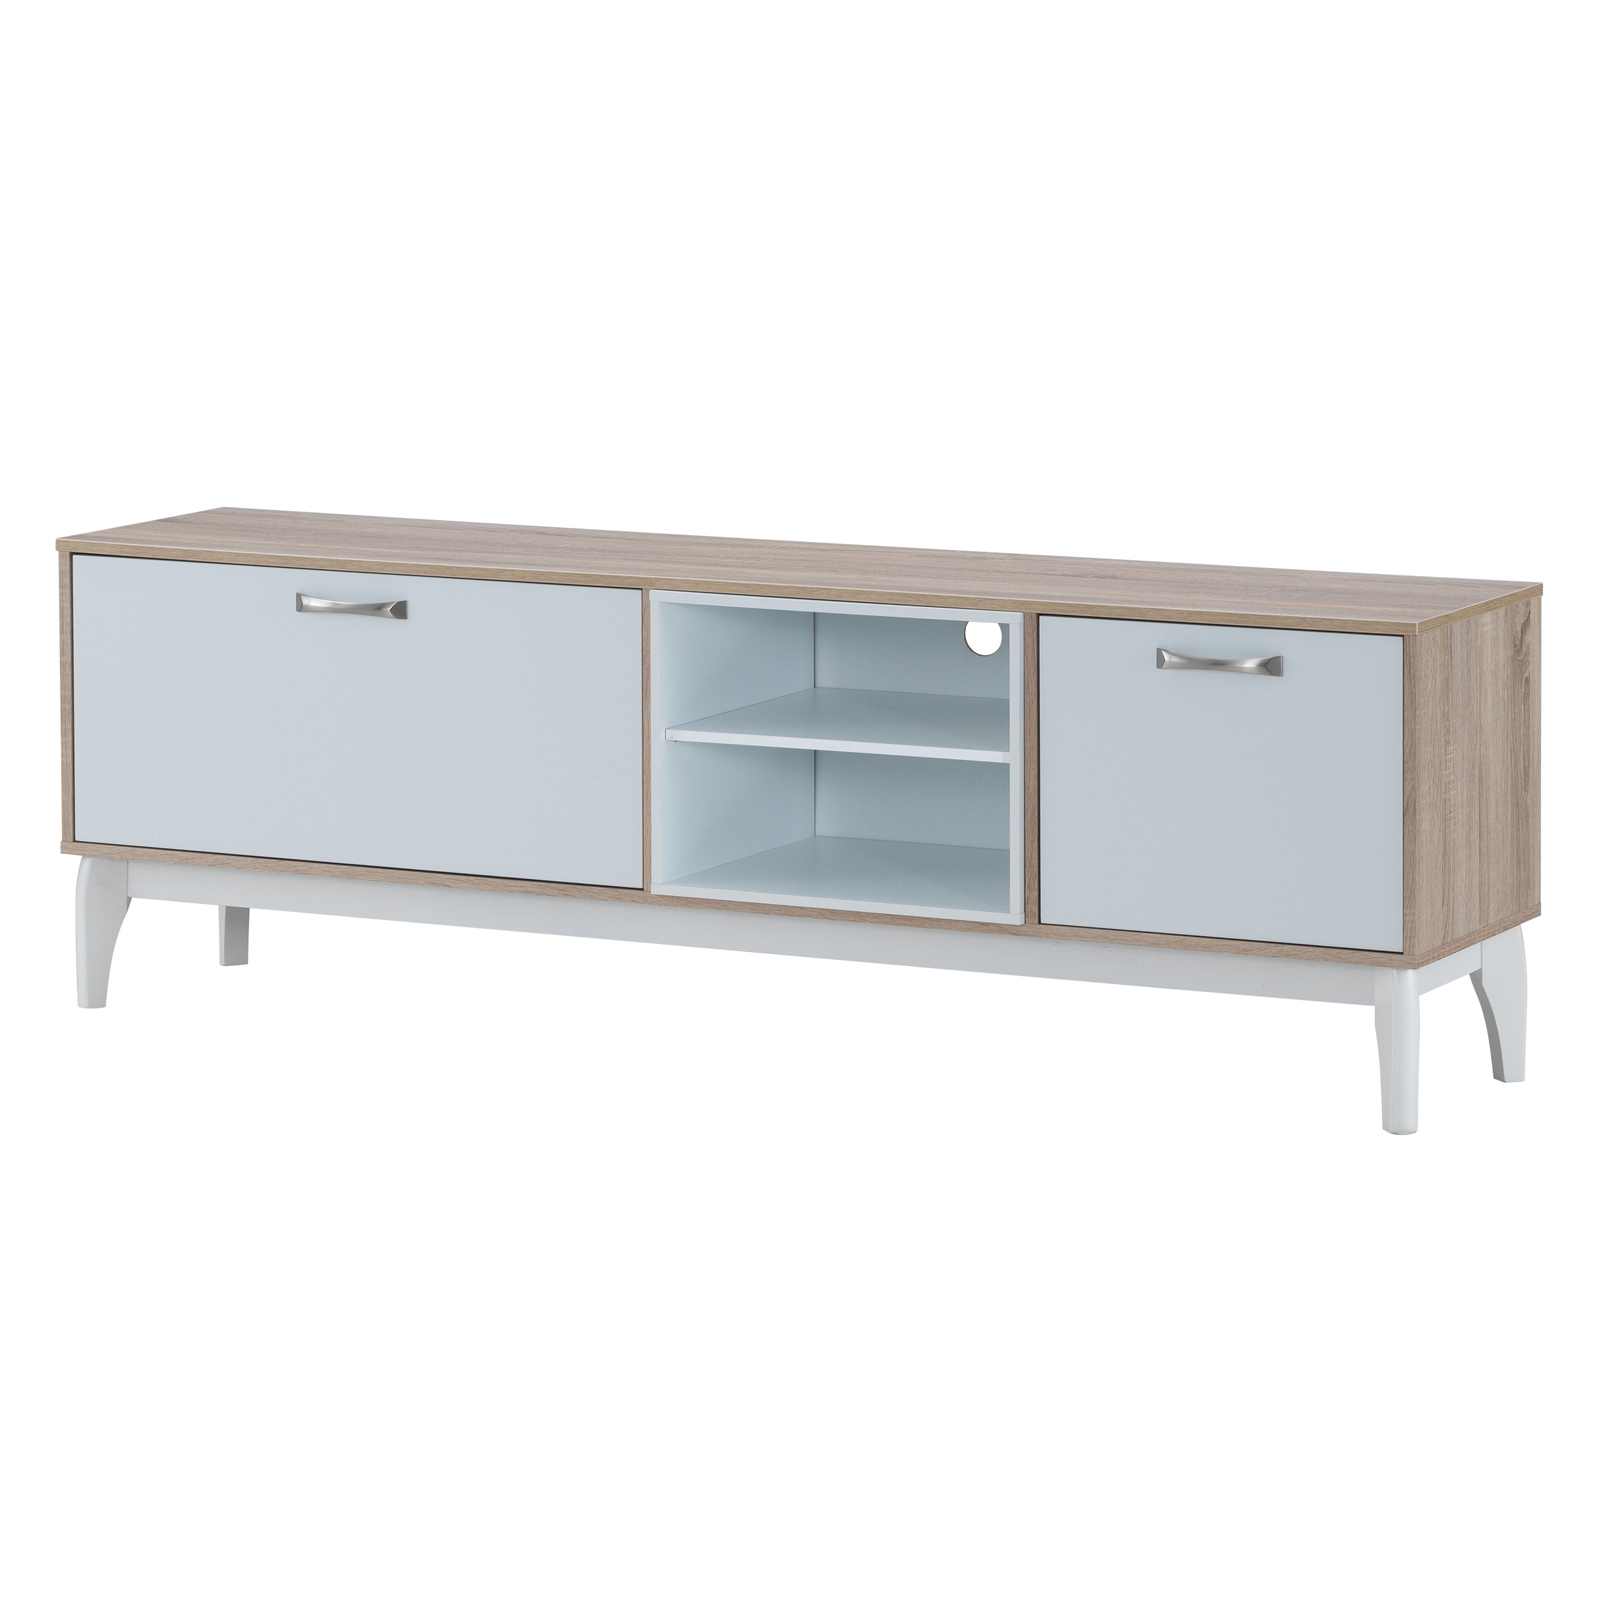 Tv Units | Entertainment Units | Temple & Webster in Natural Wood Mirrored Media Console Tables (Image 27 of 30)